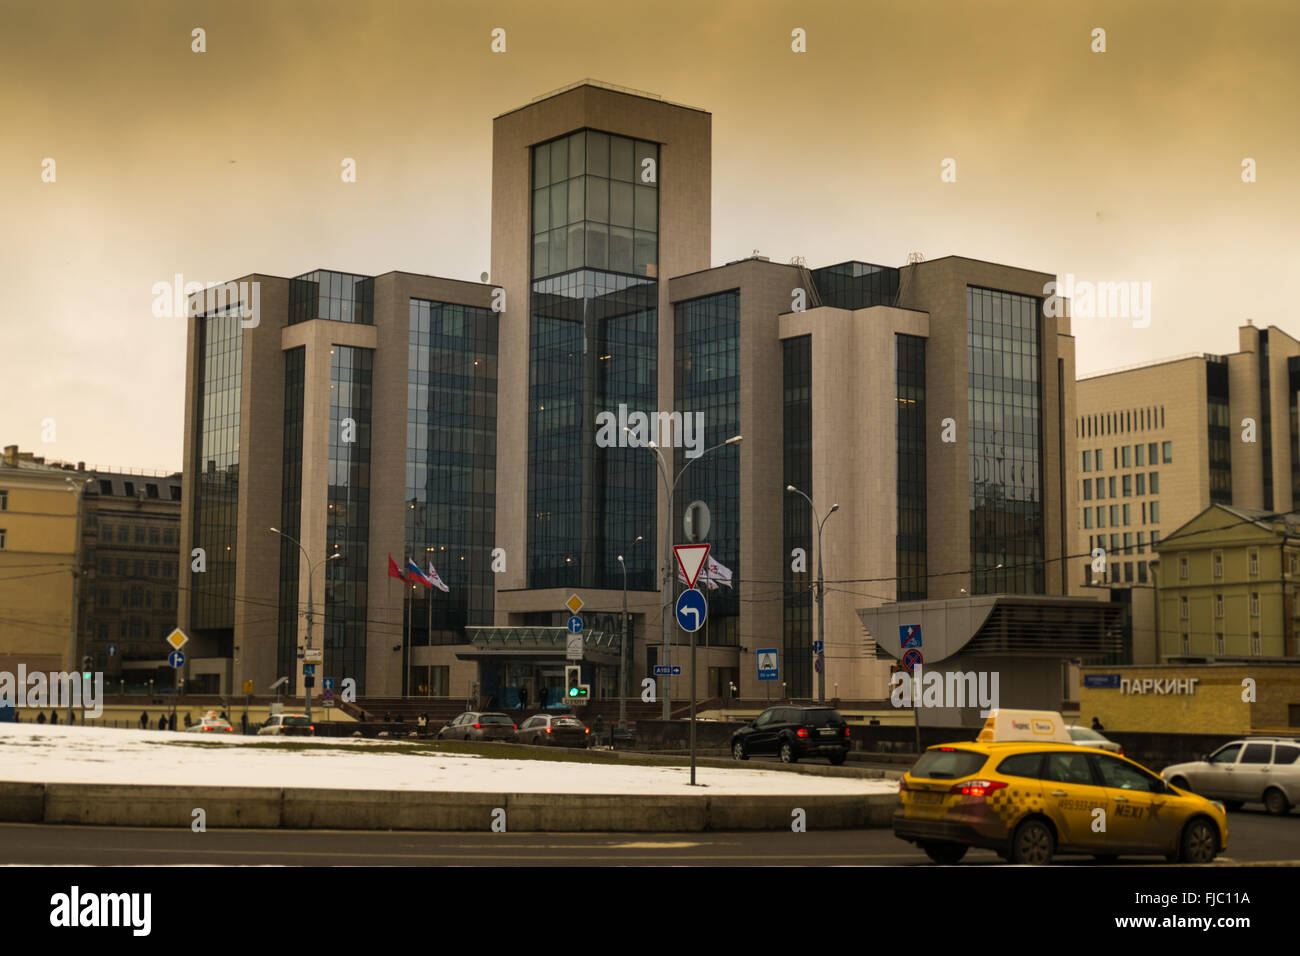 Gazprom office building in Moscow on Butcher winter - Stock Image